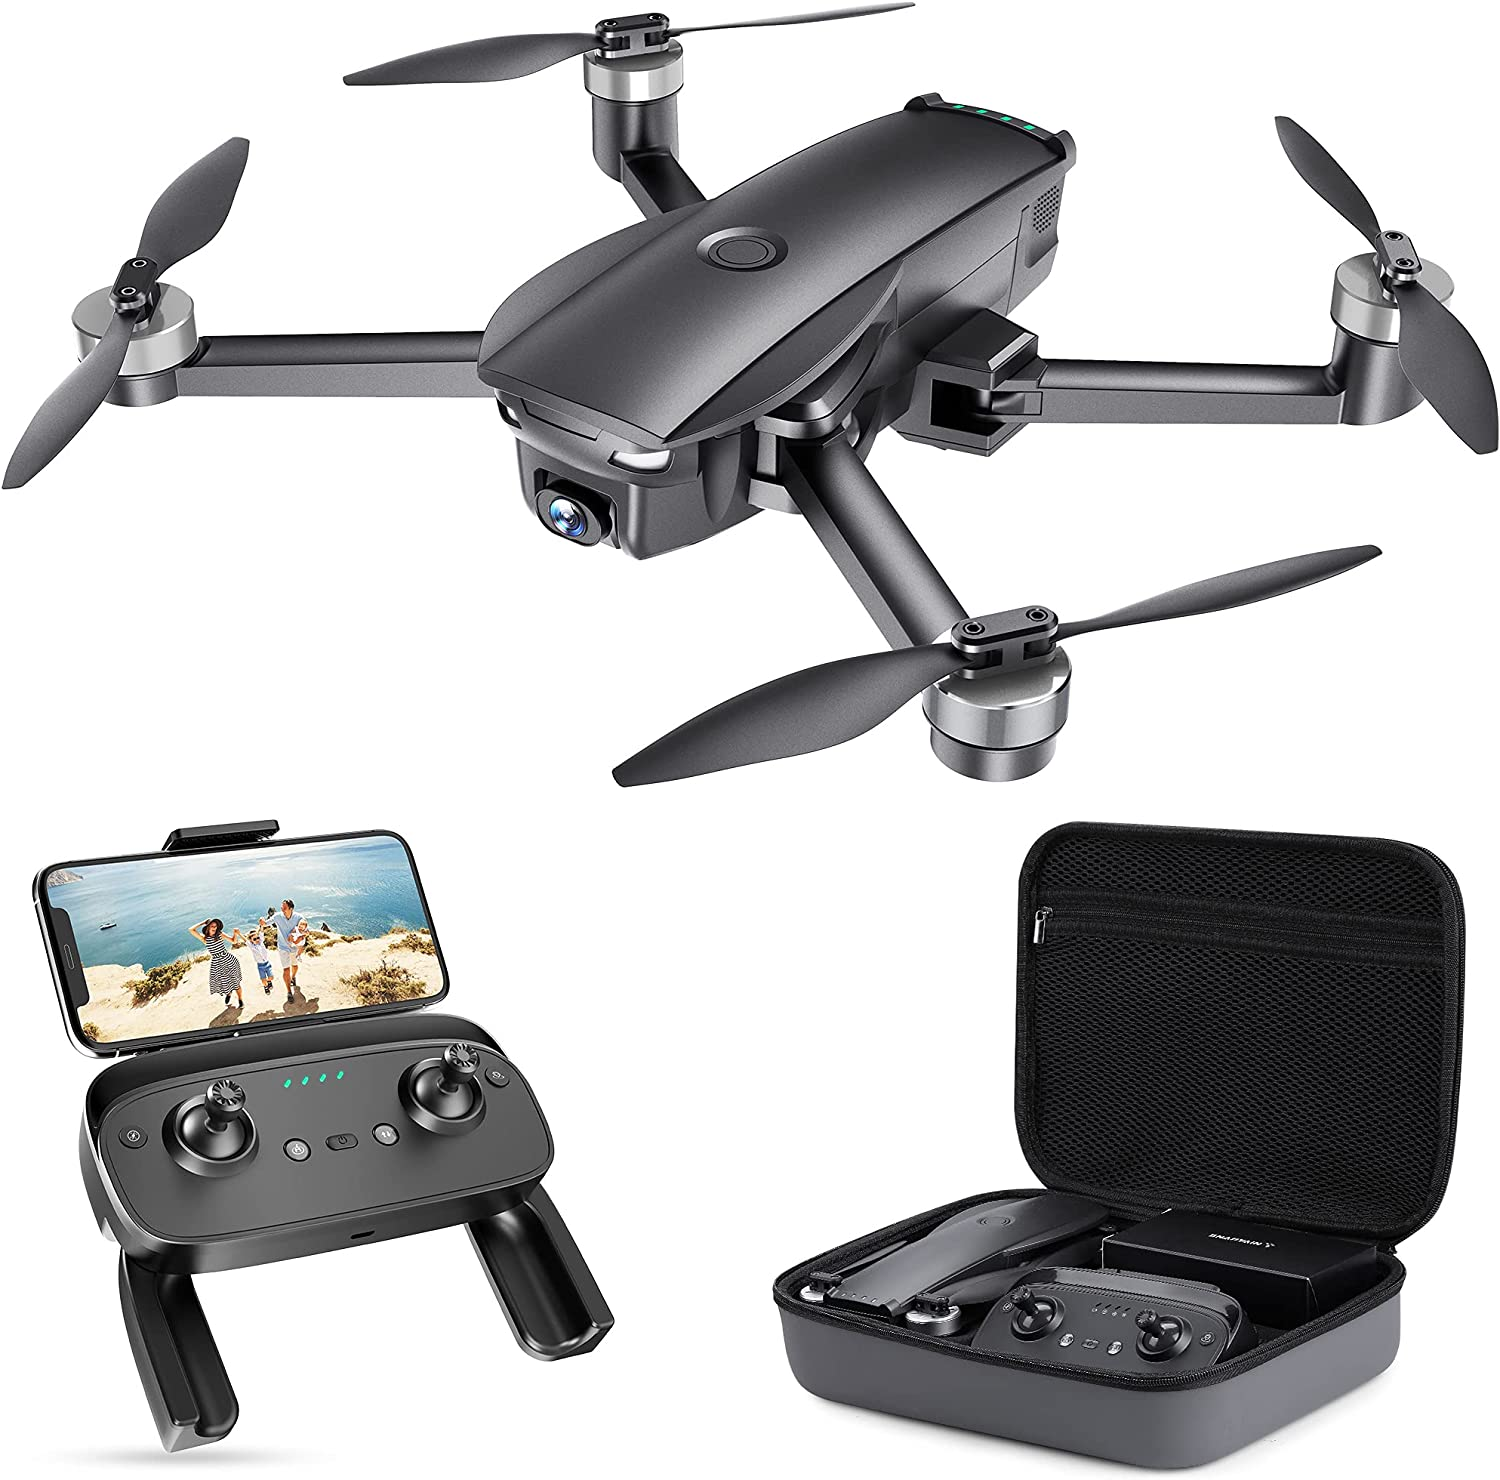 Directly managed store Snaptaⅰn SP7100 Sale SALE% OFF 4K GPS Drone with Adults for Folda Camera UHD